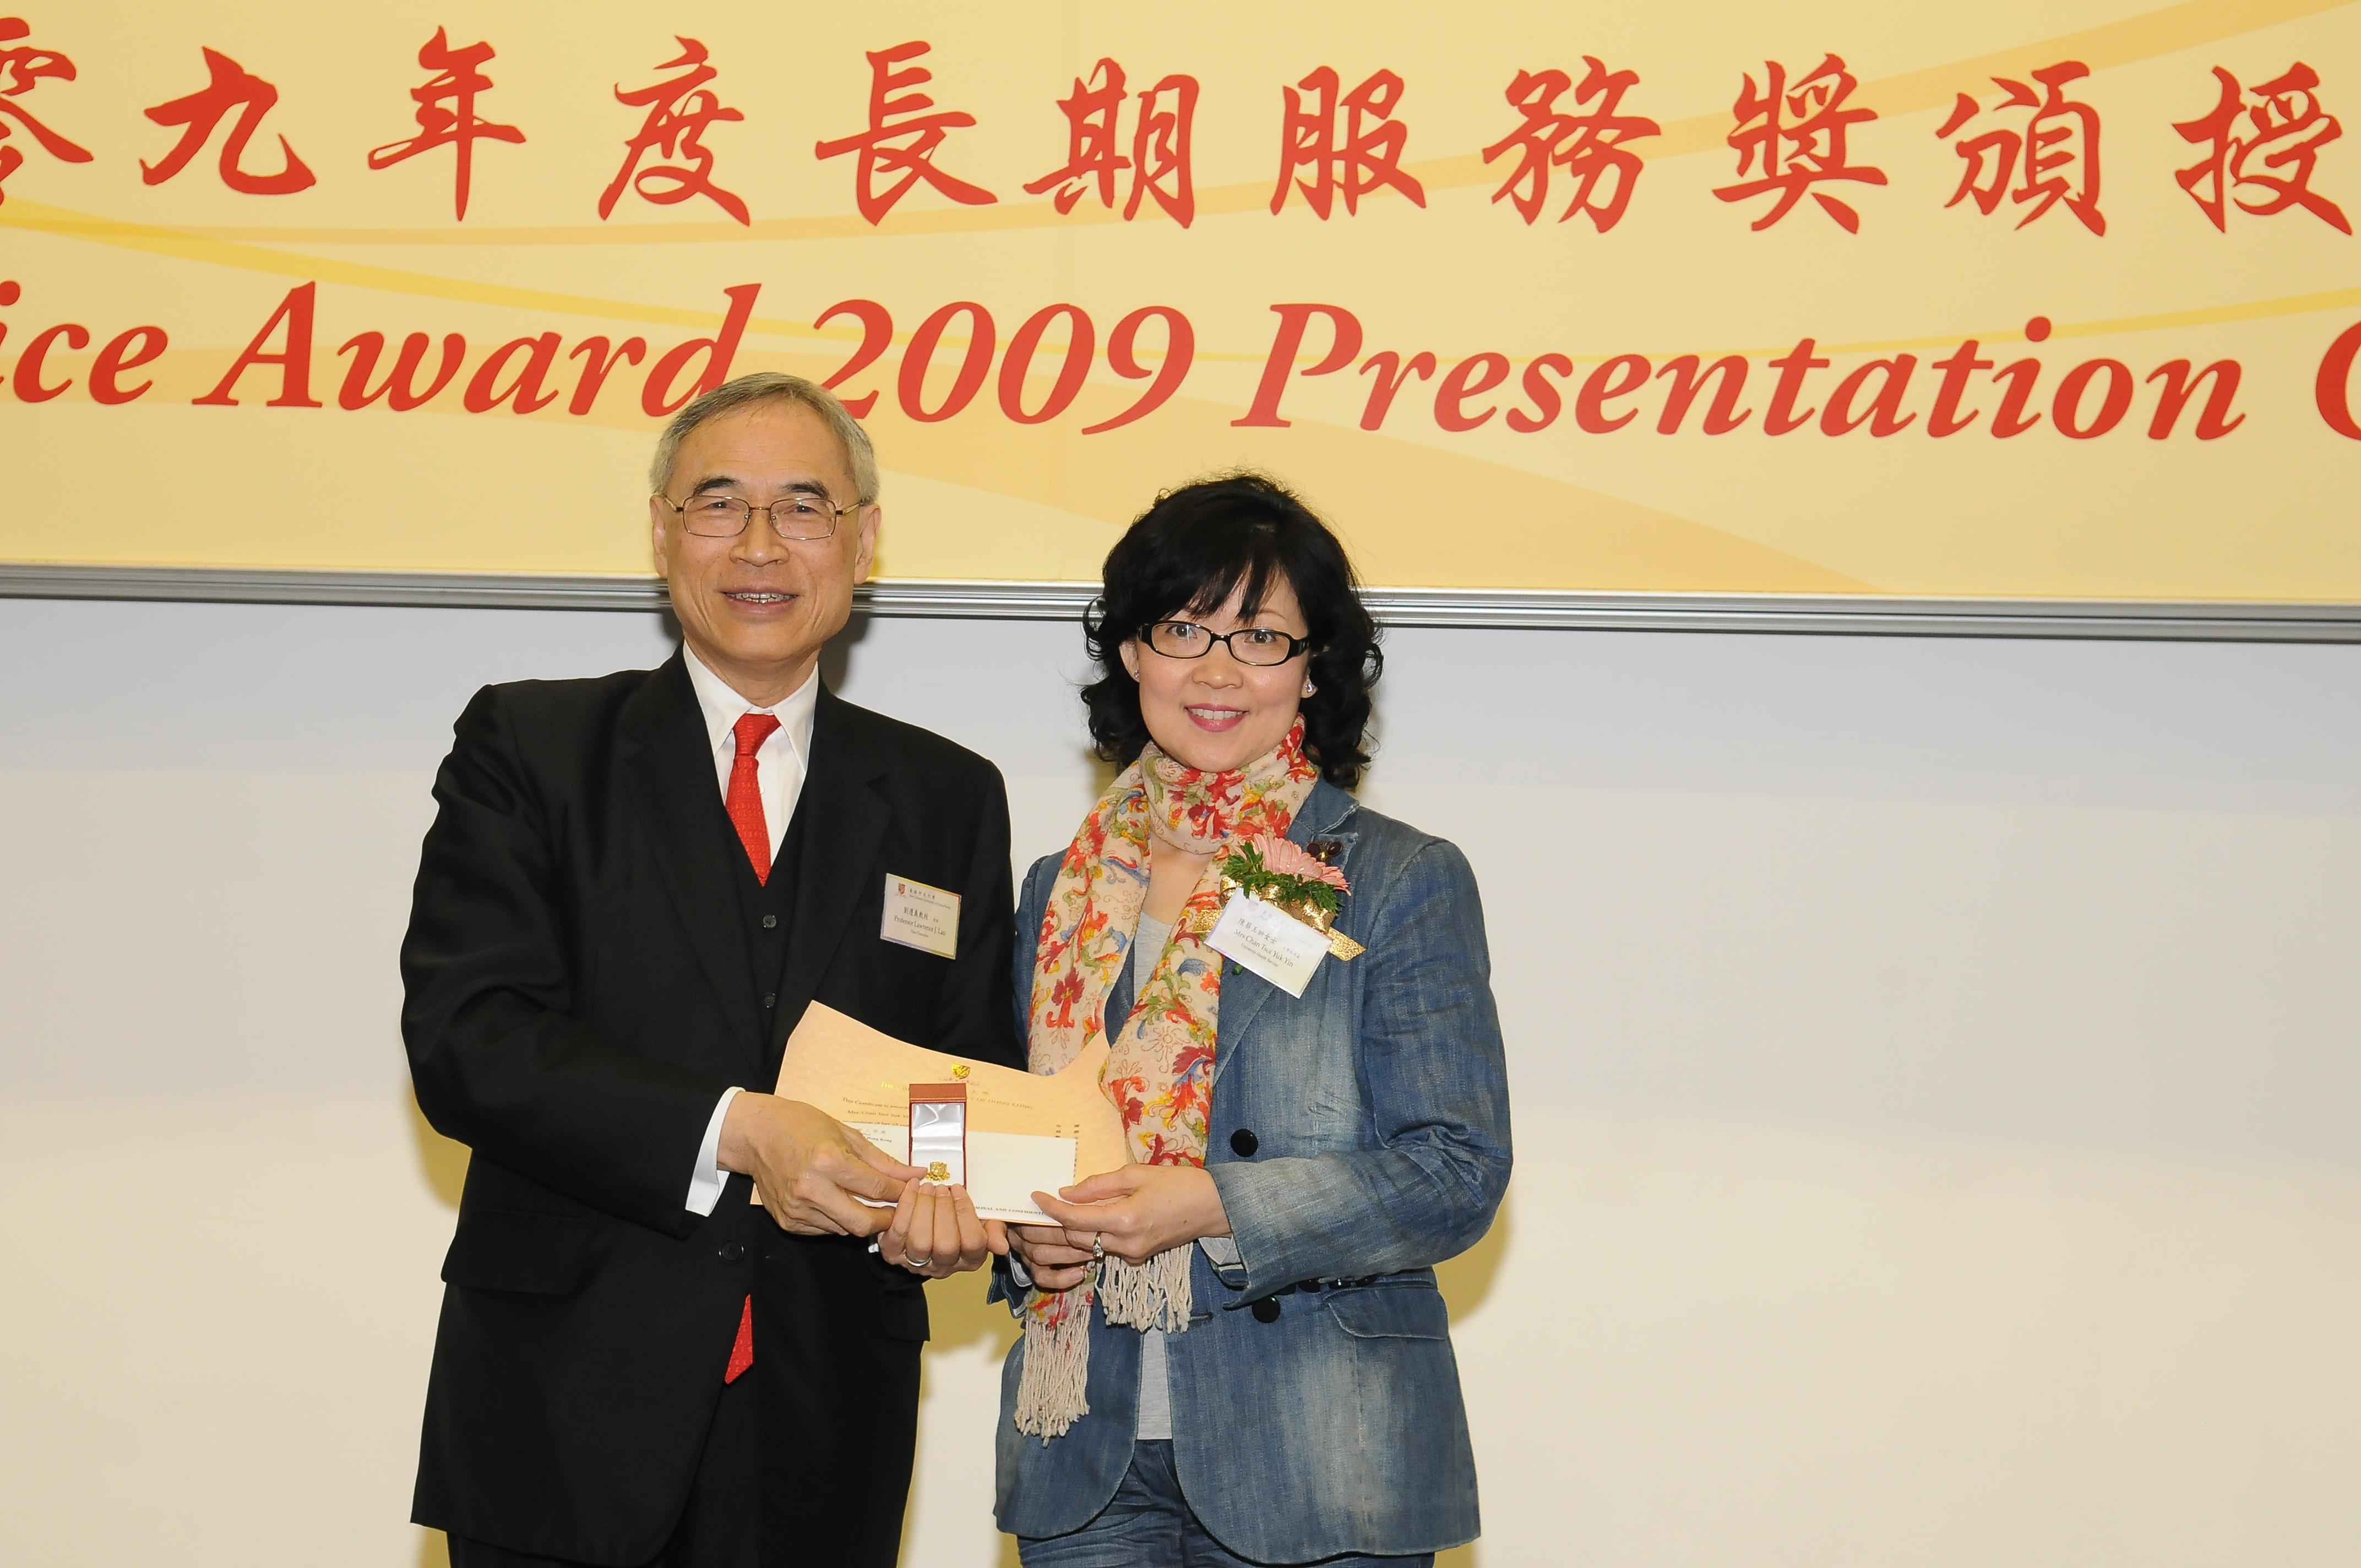 Prof. Lawrence J. Lau presents a certificate and a gold lapel pin to Mrs. Chan Tsoi Yuk-yin, recipient of 25-year Long Service Award